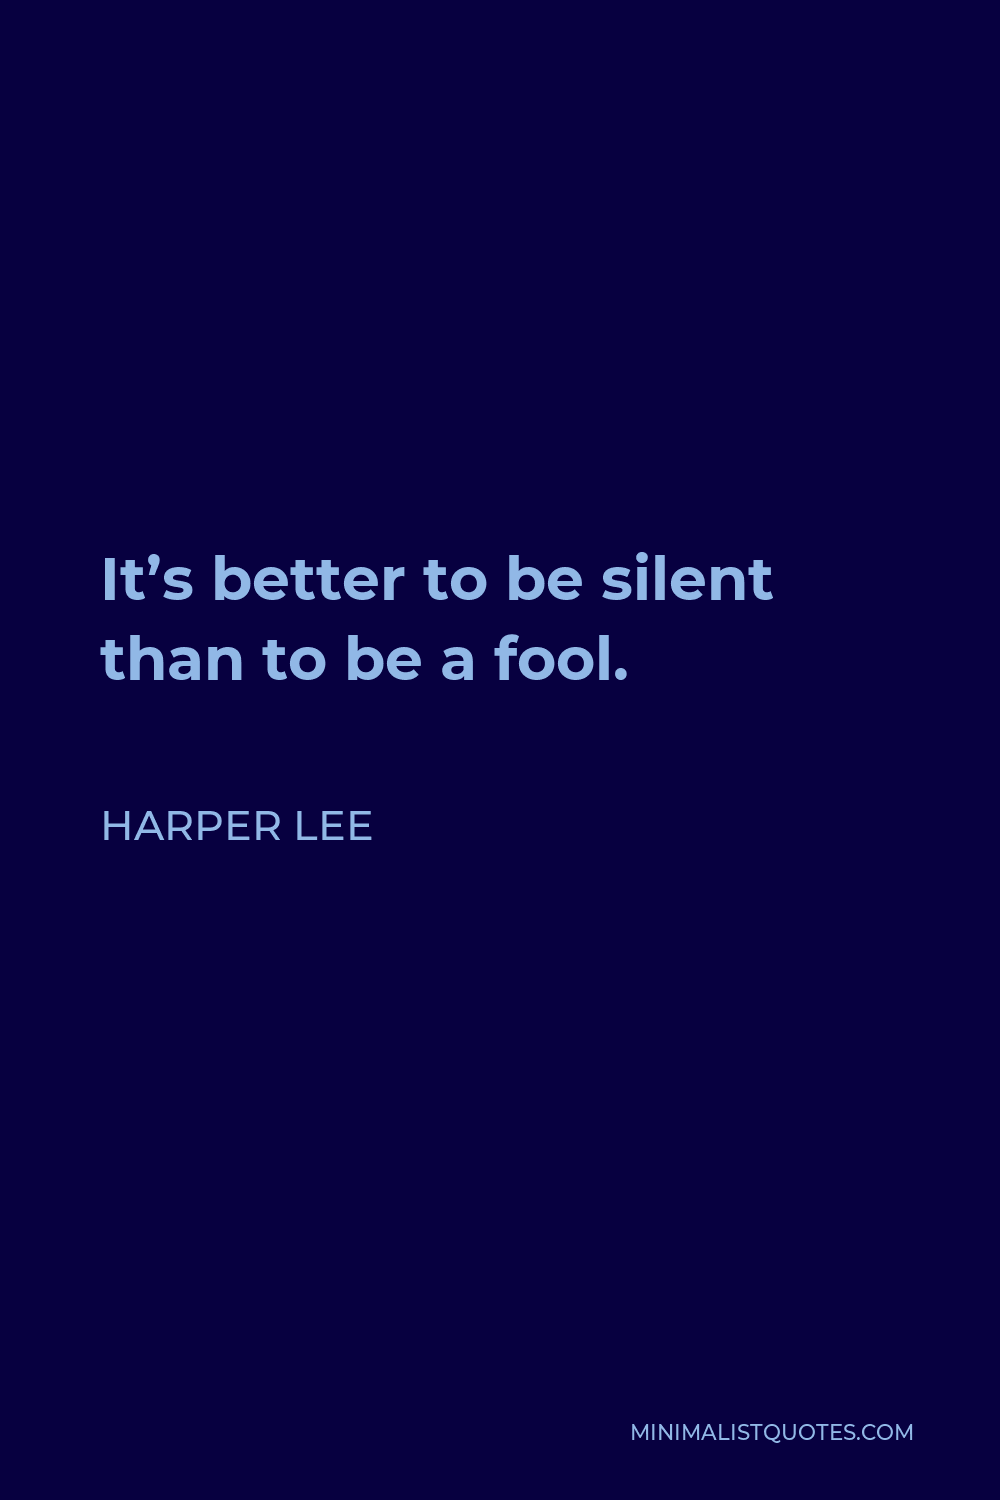 Harper Lee Quote - It's better to be silent than to be a fool.